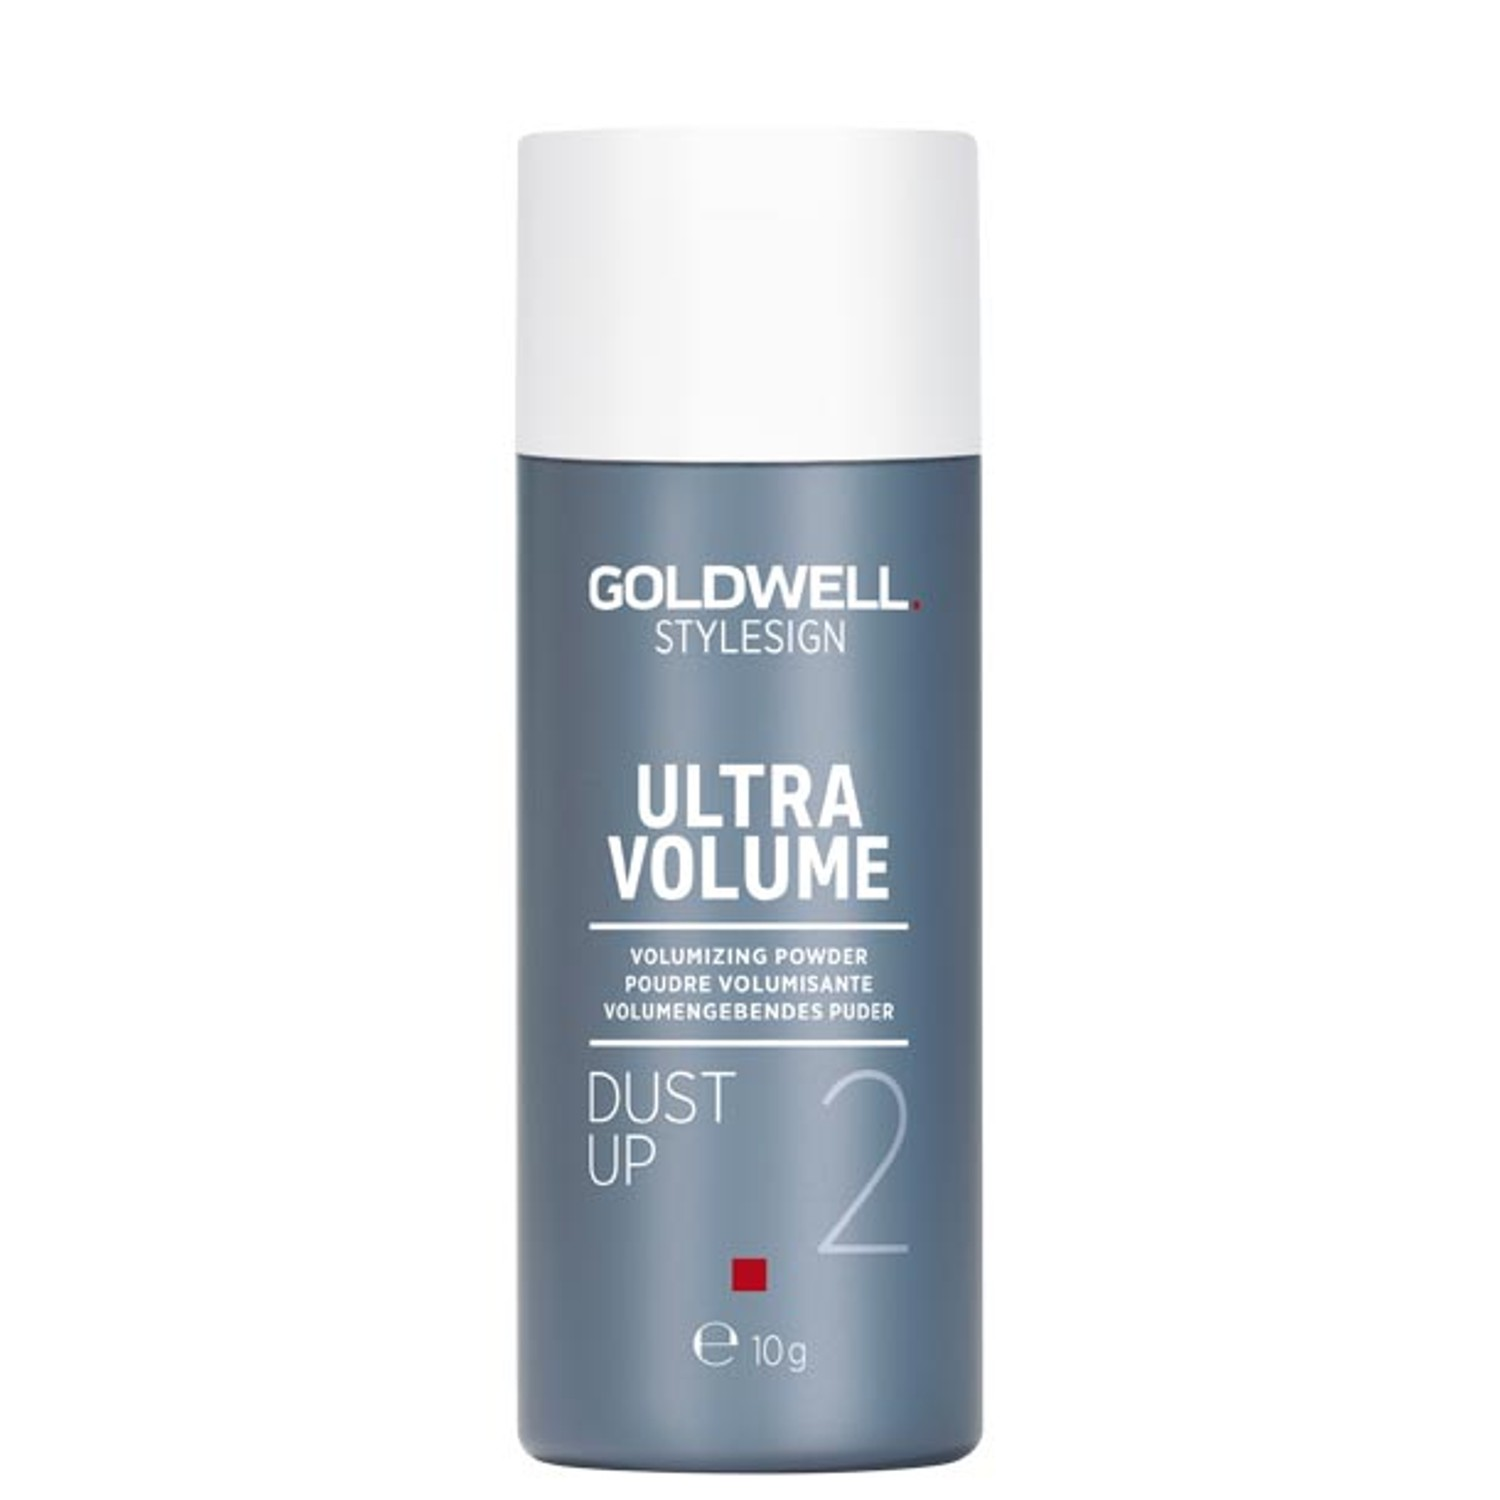 GOLDWELL Style Sign Ultra Volume Dust Up 10 g